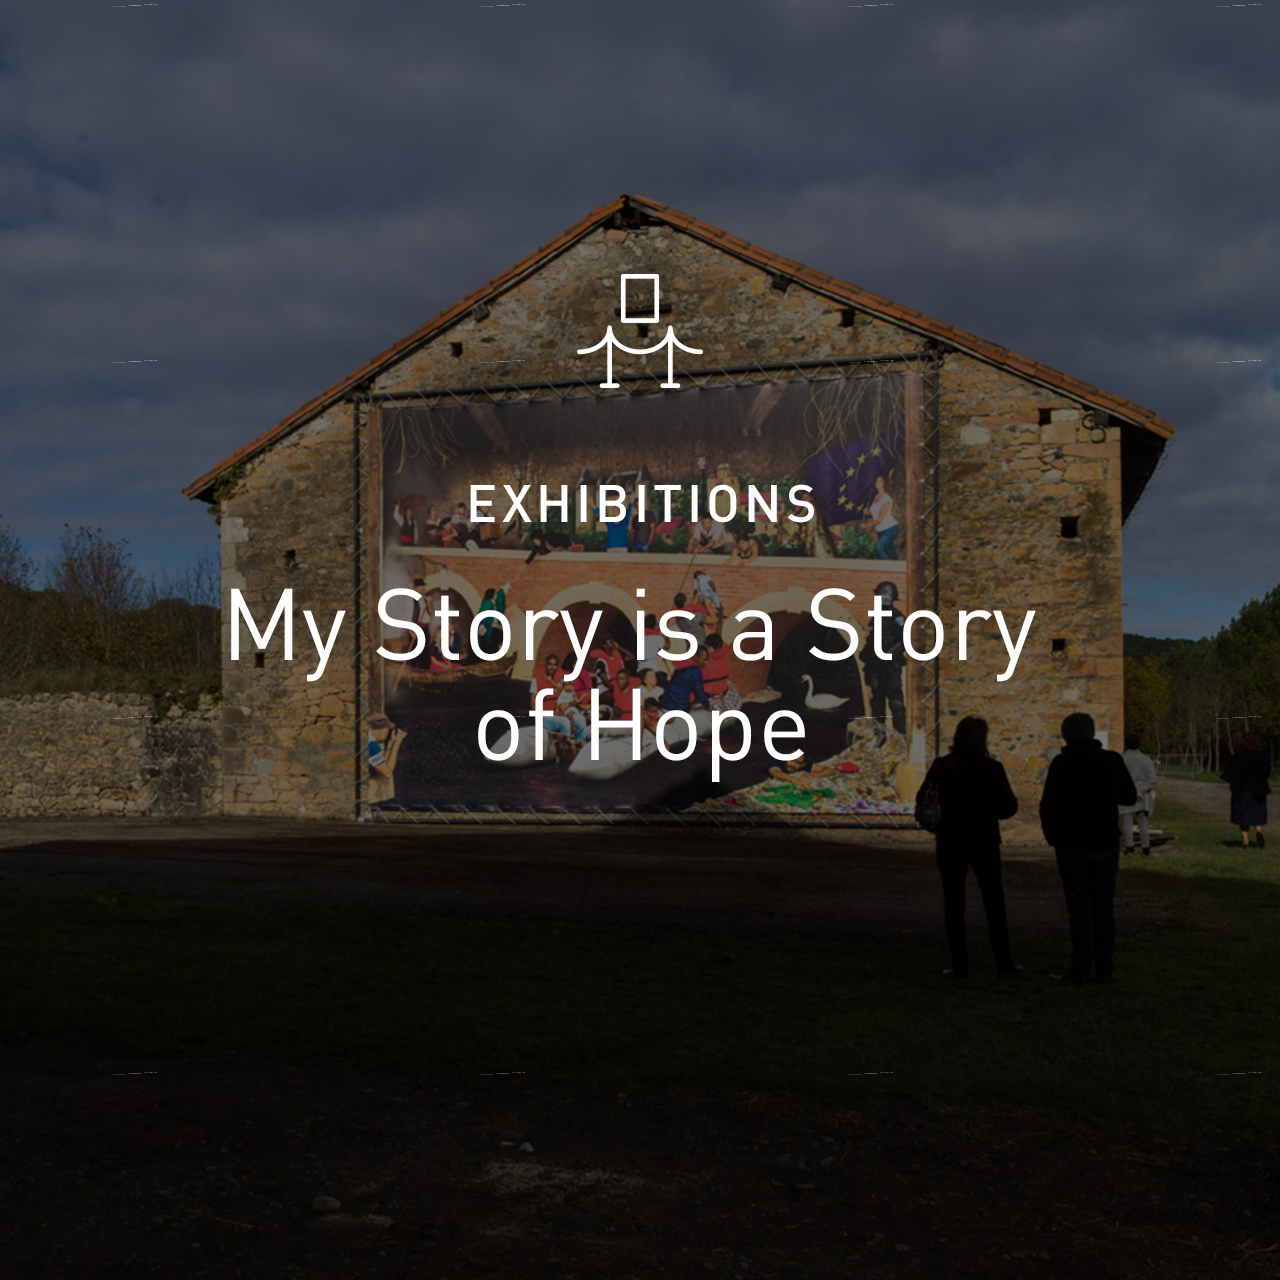 new_c_My Story is a Story of Hope - Exhibitions